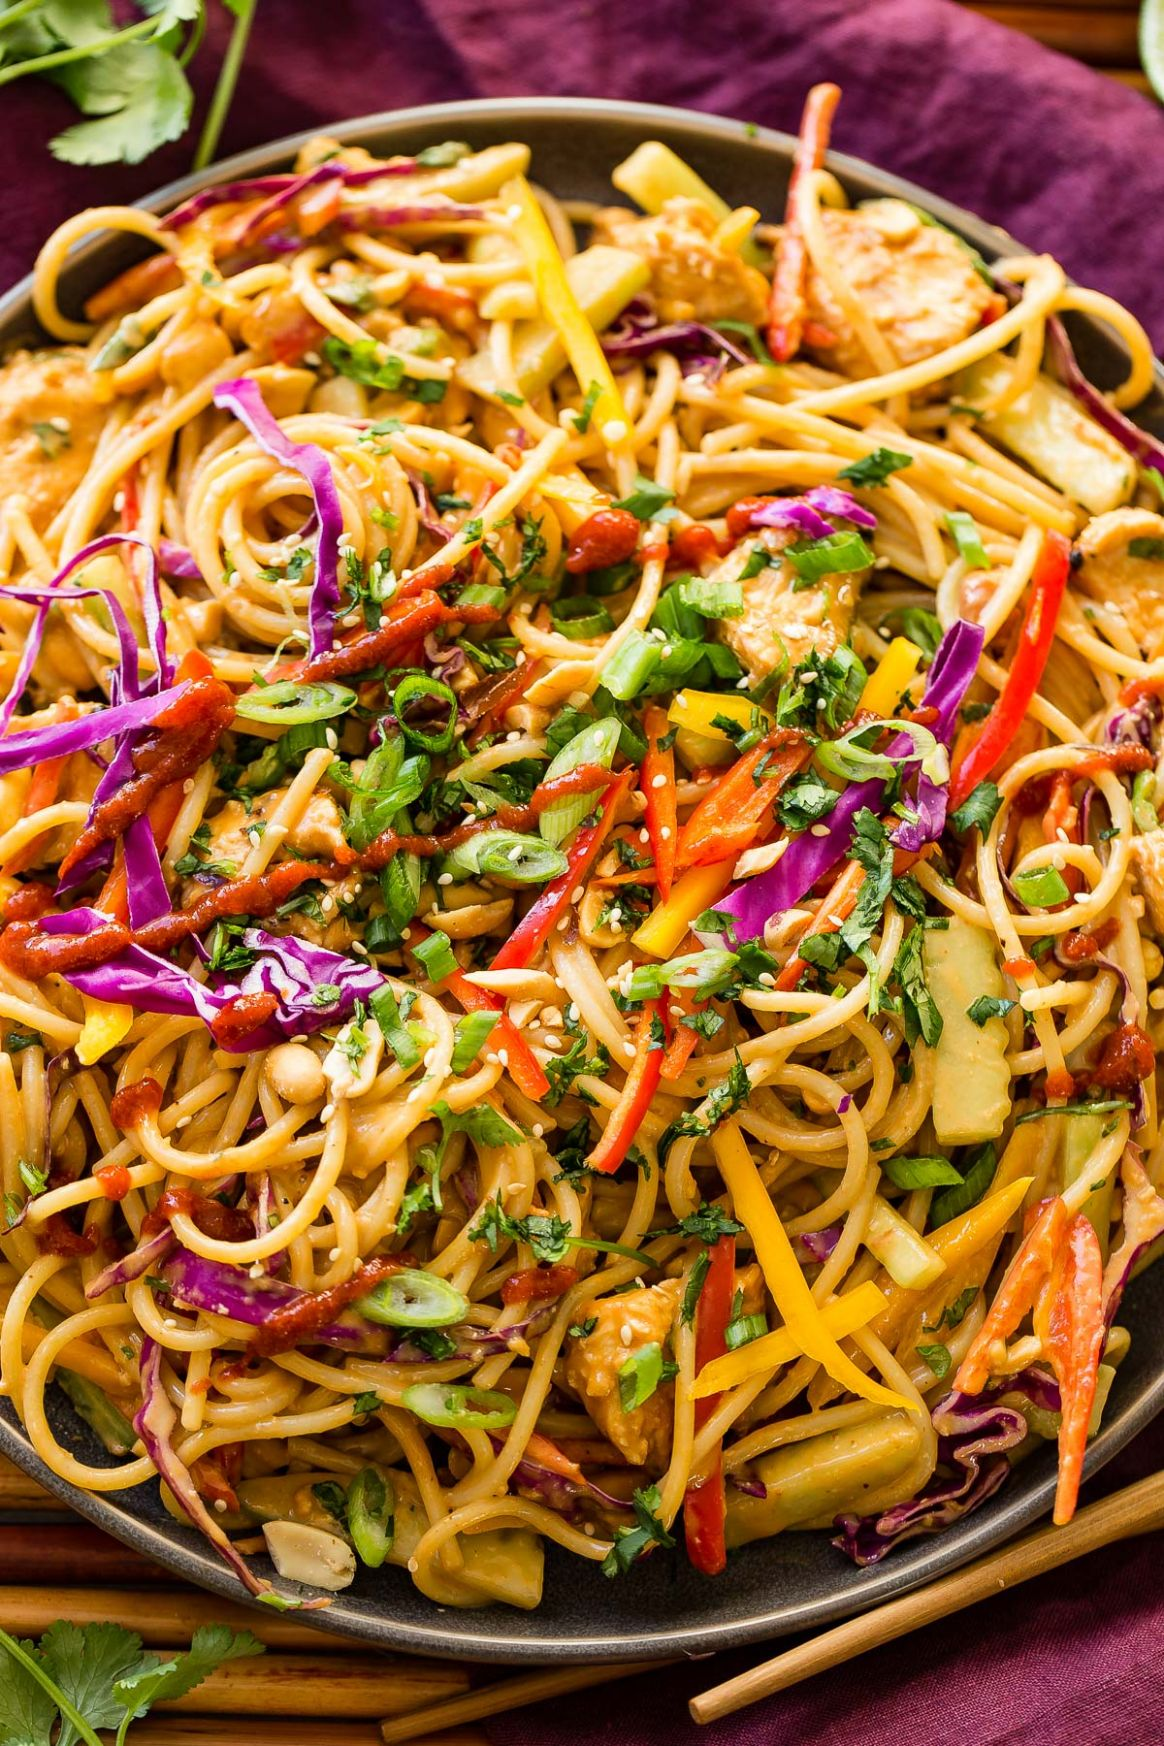 Thai Peanut Noodles and Chicken - Recipes Rice Noodles Peanut Sauce